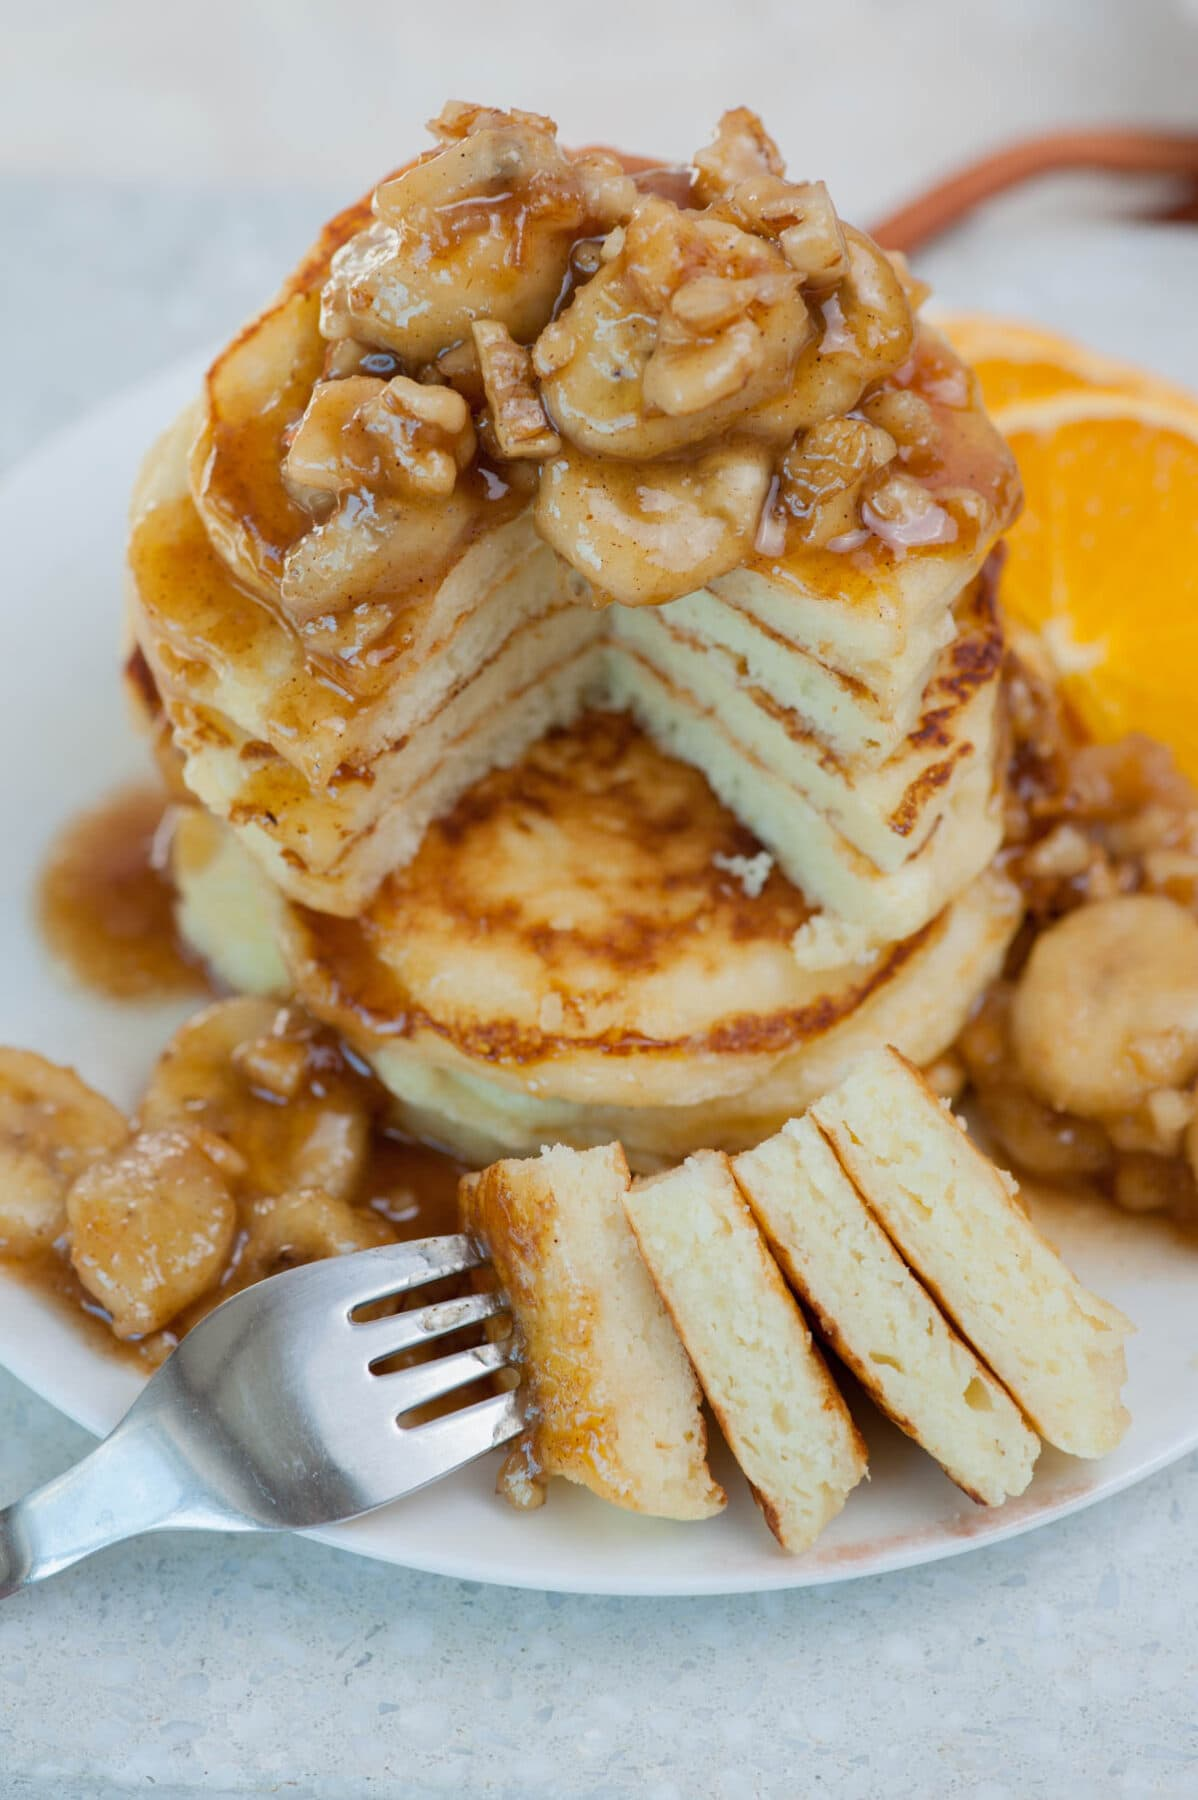 A stack of banana foster pancakes with a part cut of and stuck on a fork.